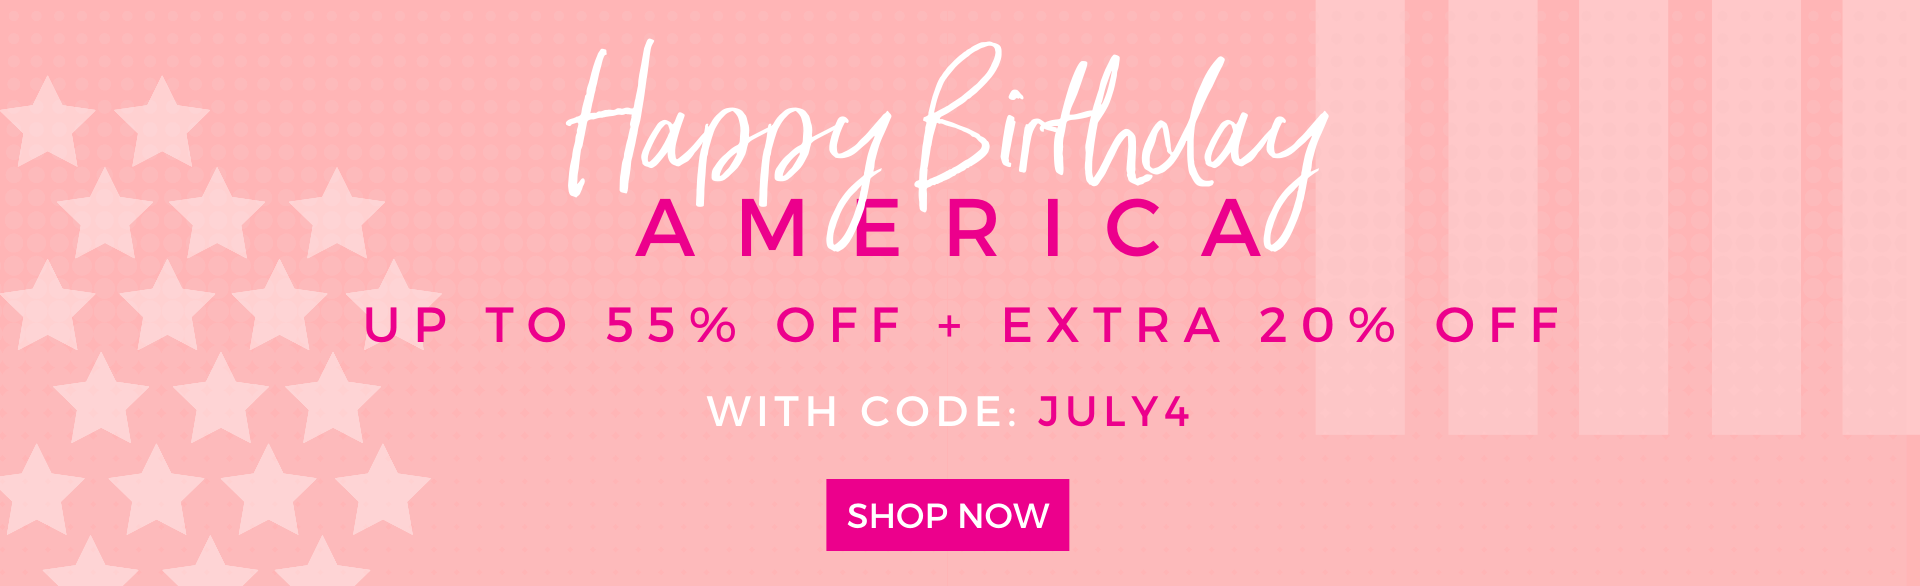 up to 55% off + extra 20% with code: JULY4